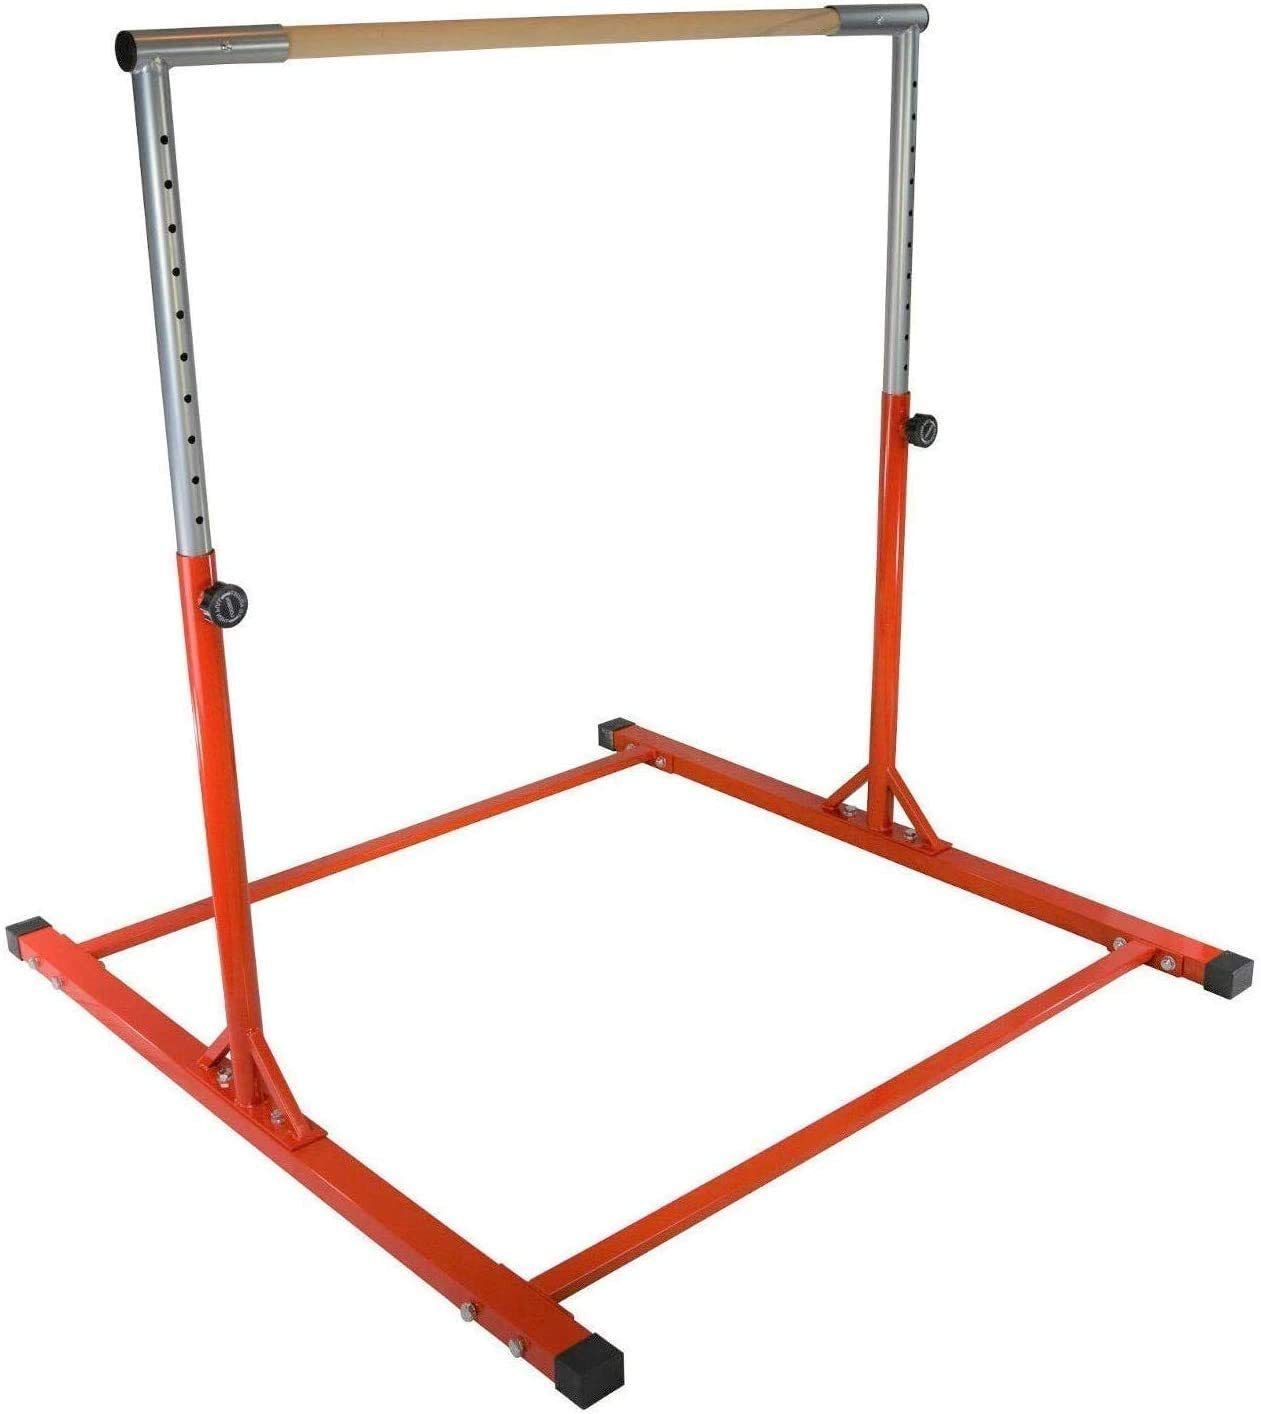 Athletic Bar Kids Gymnastics Junior Horizontal Kip Bar 3 to 5 FT Training Jungle Gym Expandable Adjustable Height 3 to 5 FT Red Tumble Weight Capacity 300 Pounds